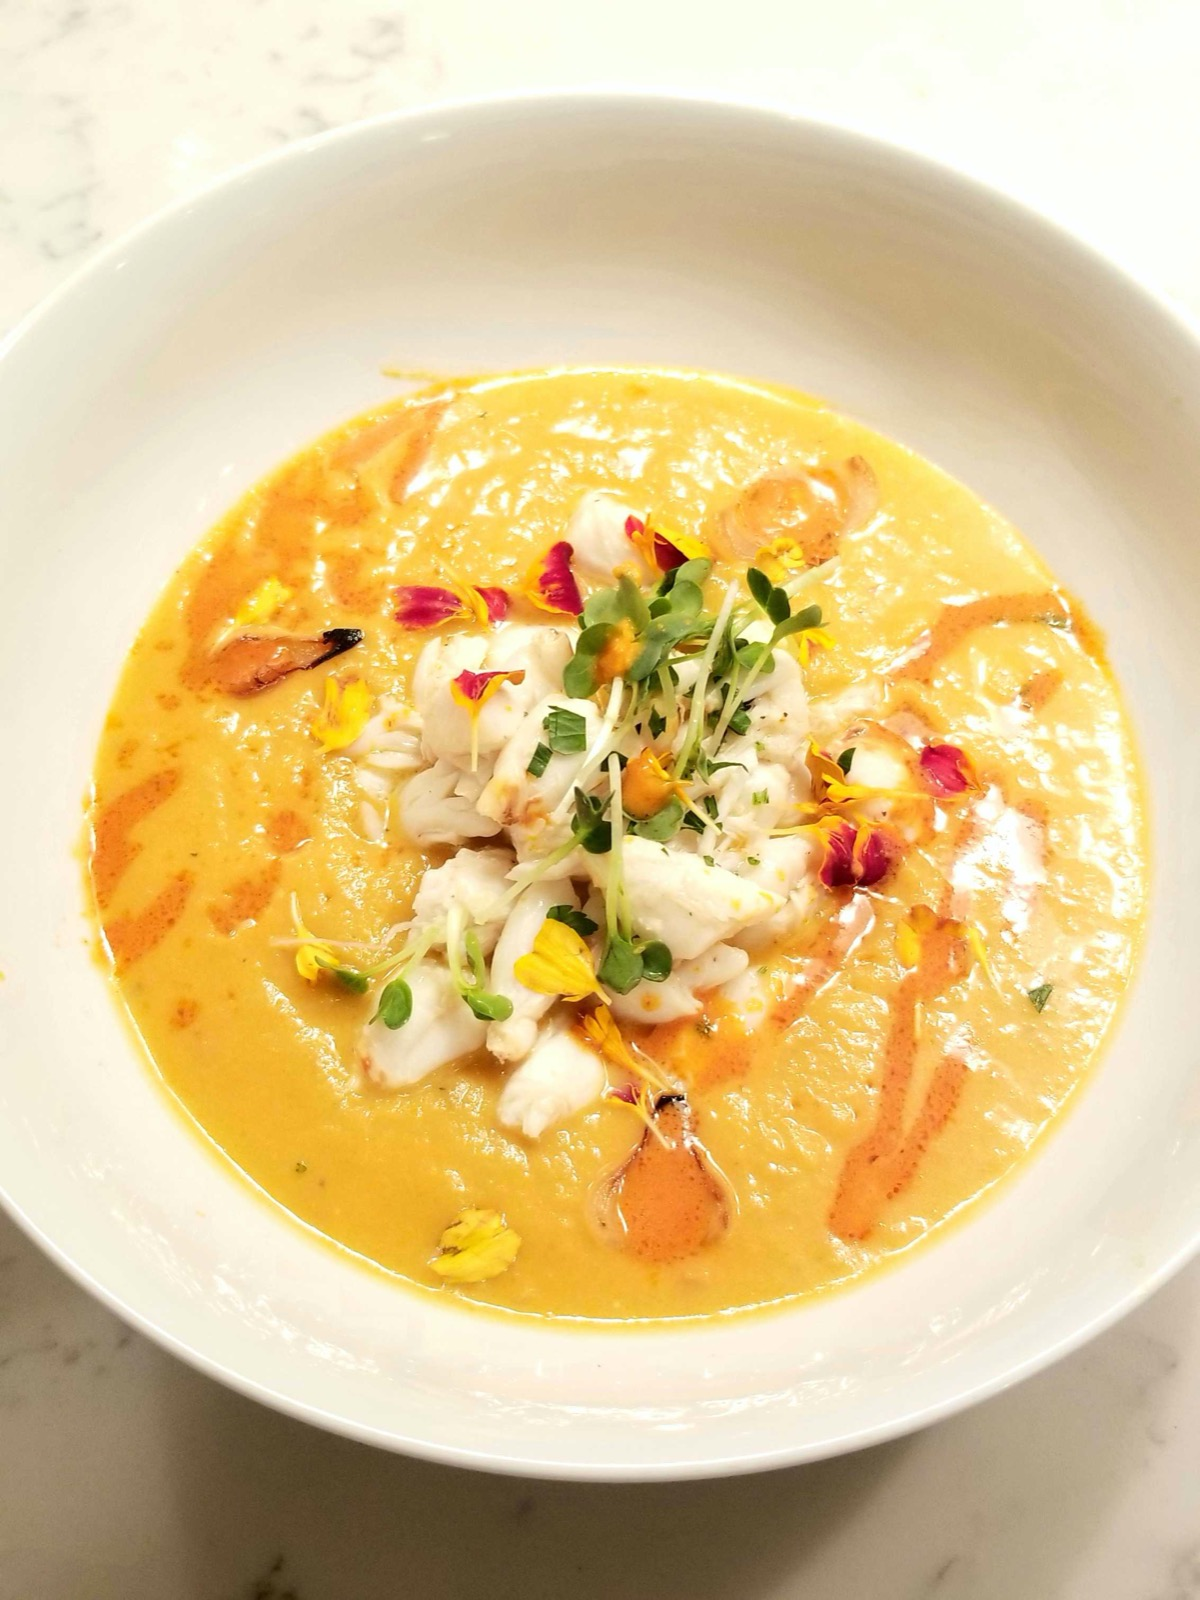 Fresh homemade crab and acorn squash bisque with edible flowers